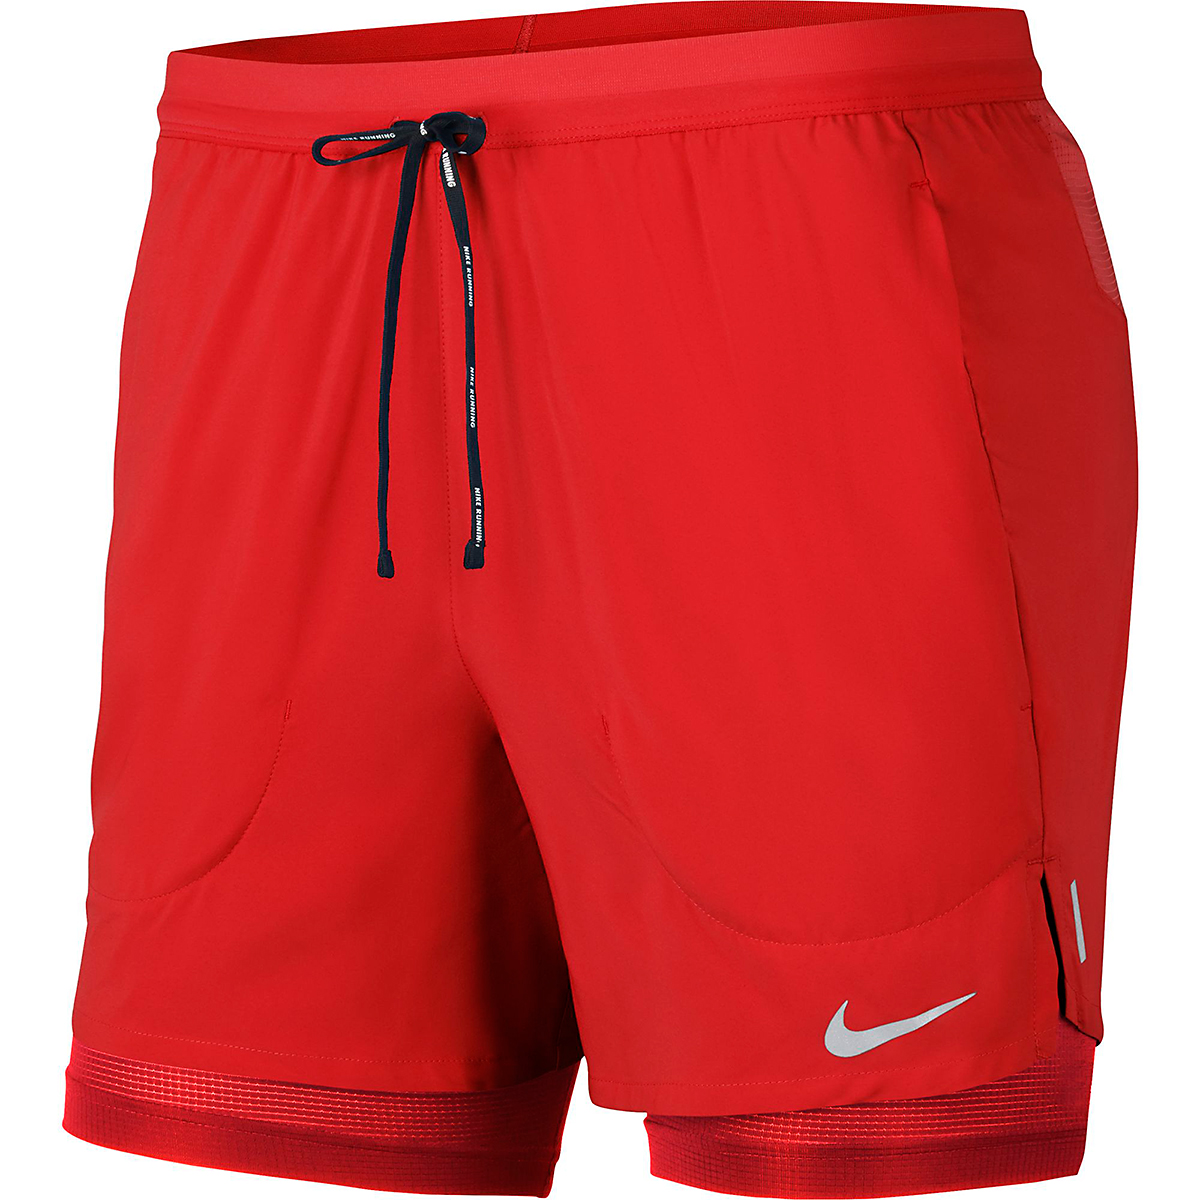 """Men's Nike Flex Stride 5"""" 2-In-1 Running Shorts - Color: Chile Red - Size: L, Chile Red, large, image 4"""